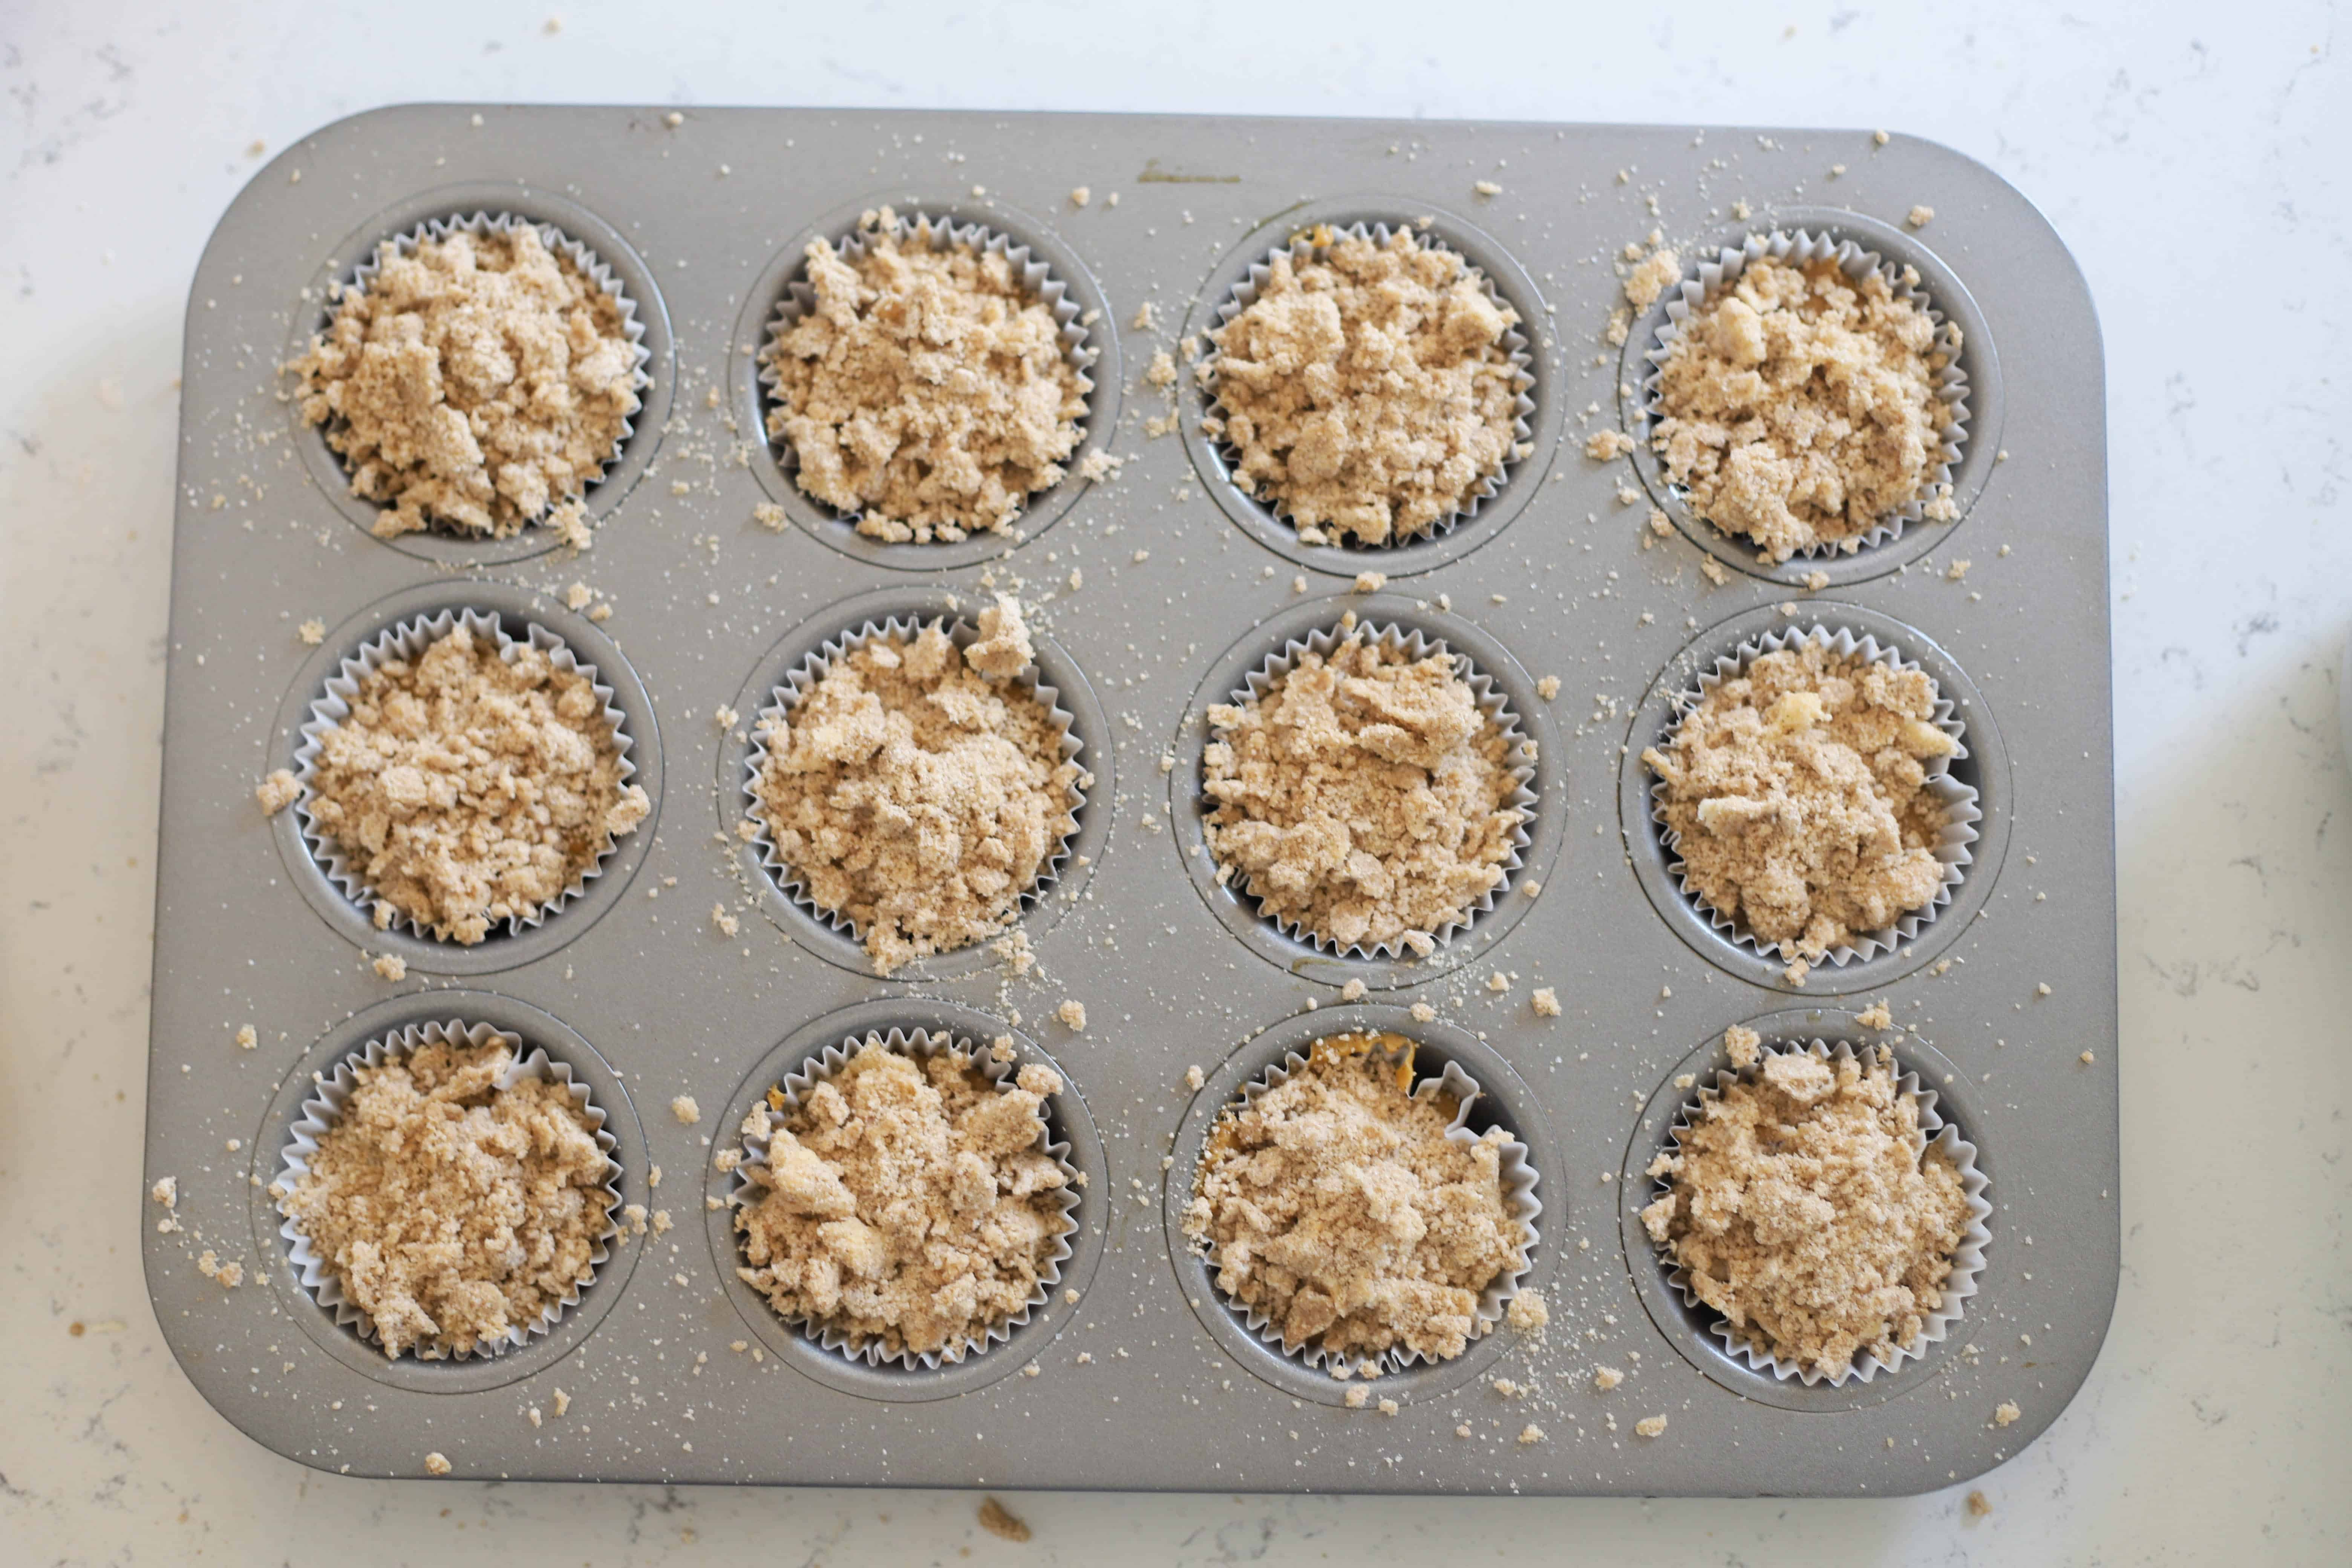 streusel sprinkled on top of muffins